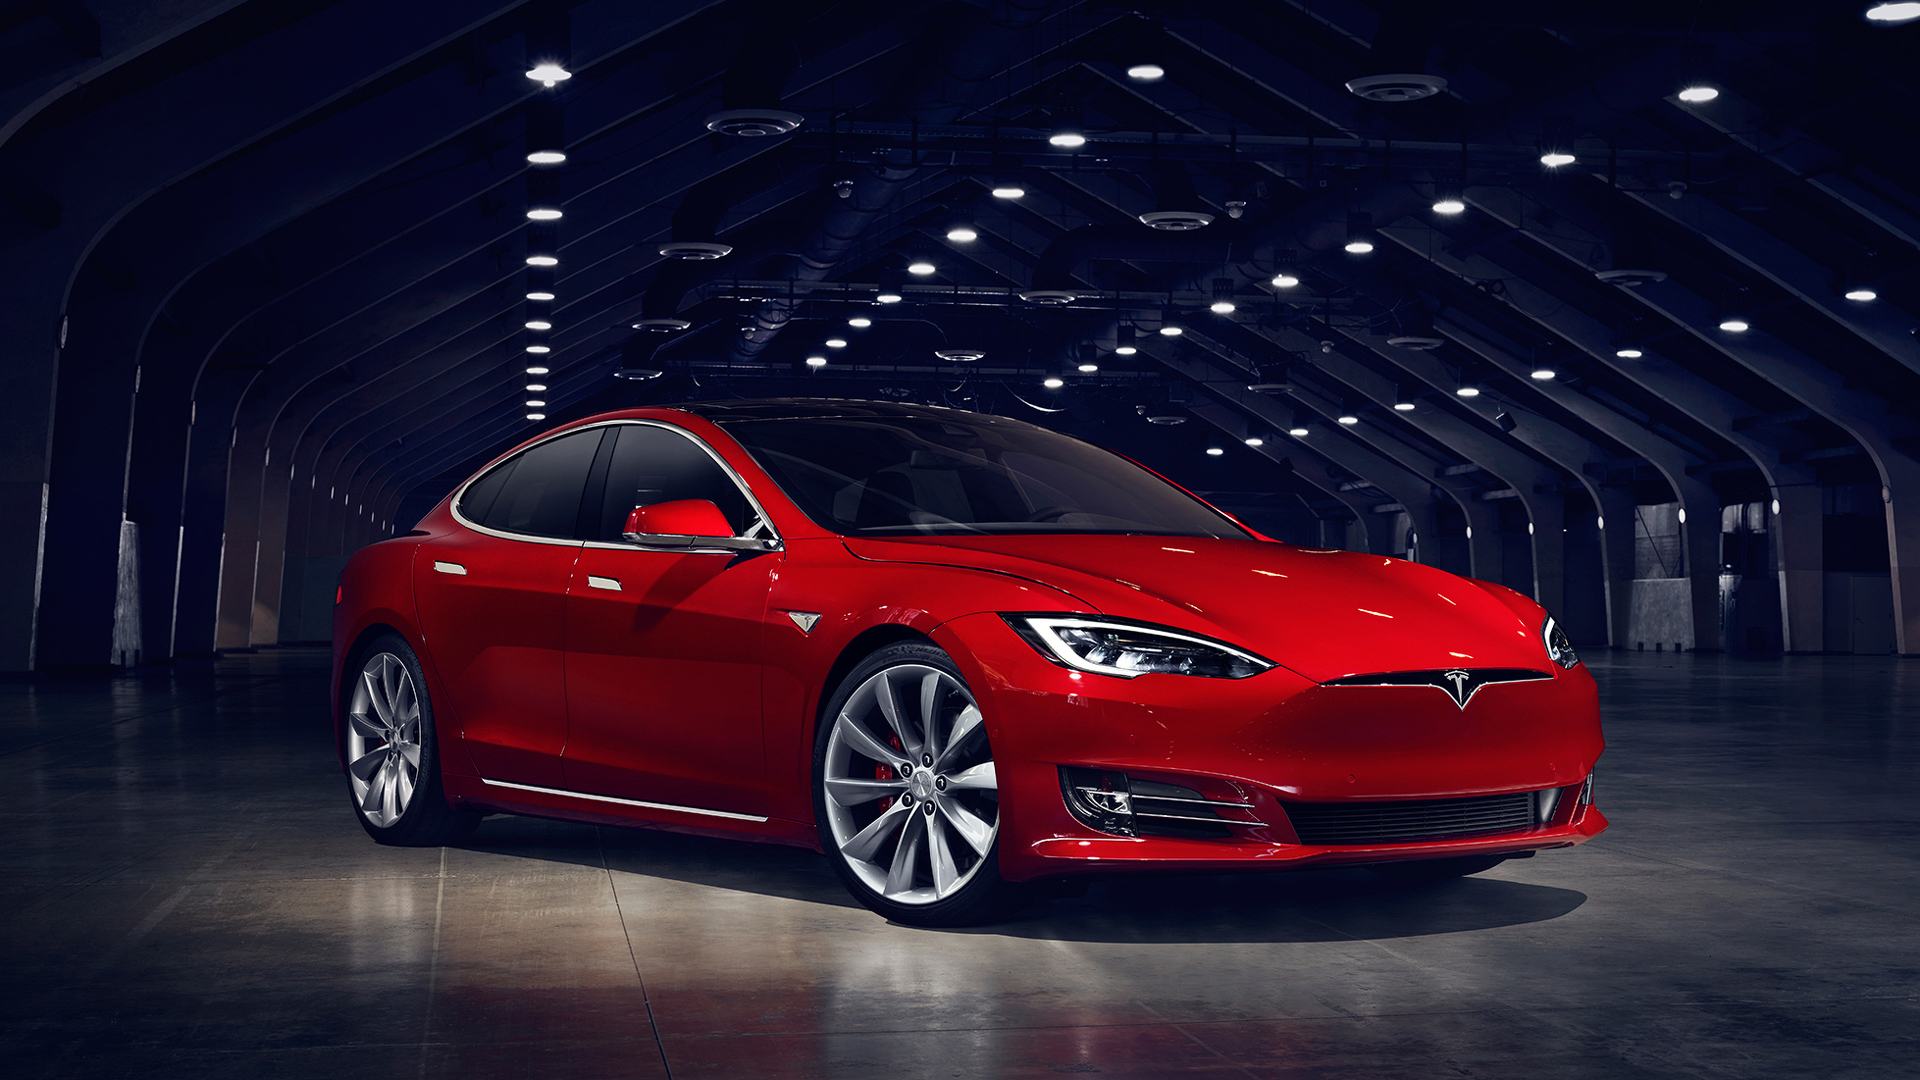 tesla model s p100d upgrade pour un 0 100 km h en 2 7 s et 613 km d autonomie les voitures. Black Bedroom Furniture Sets. Home Design Ideas